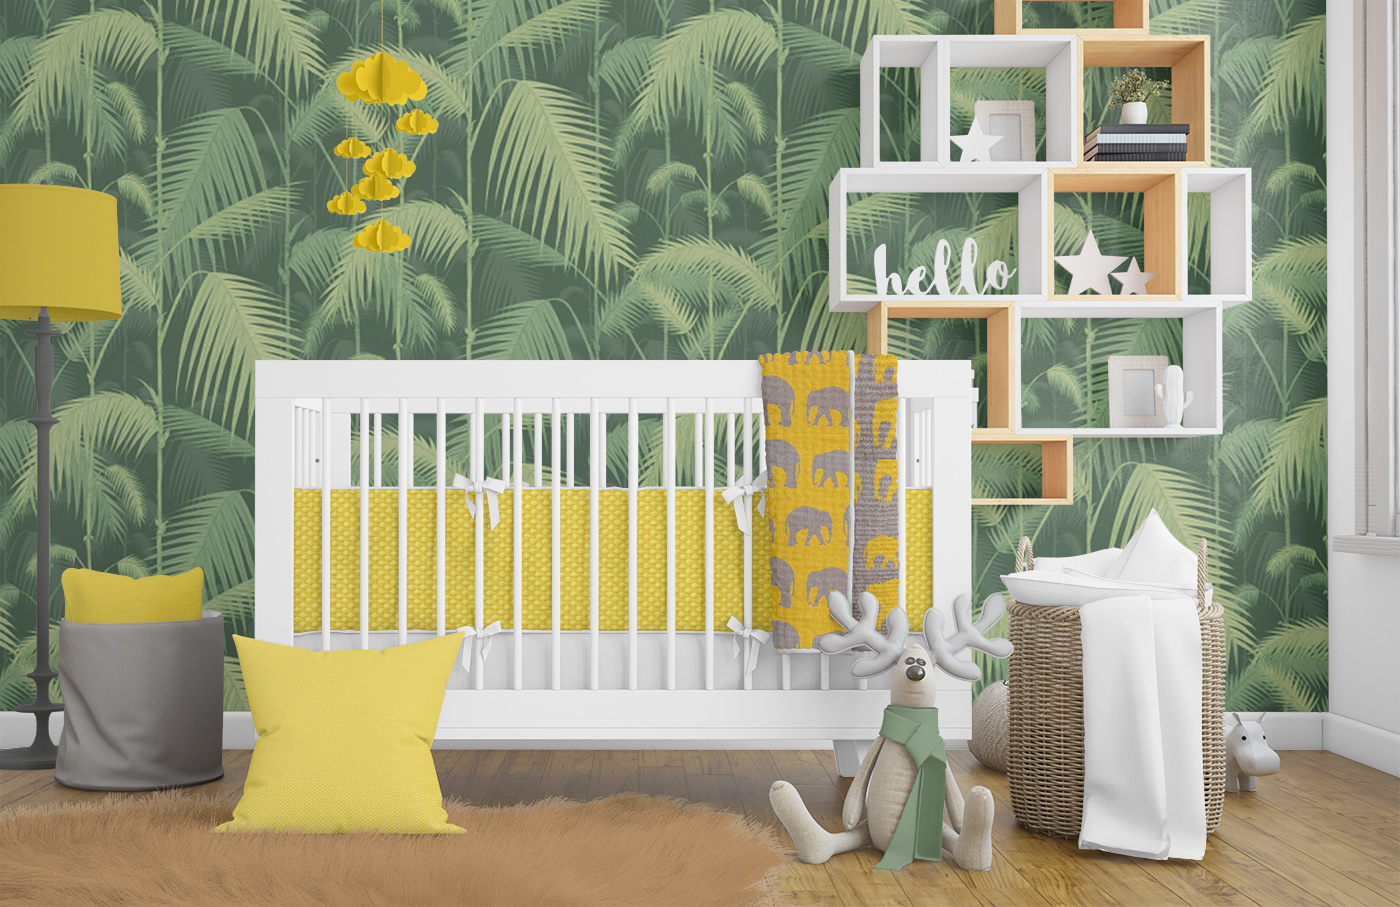 Jungle Nursery Theme Decor Ideas